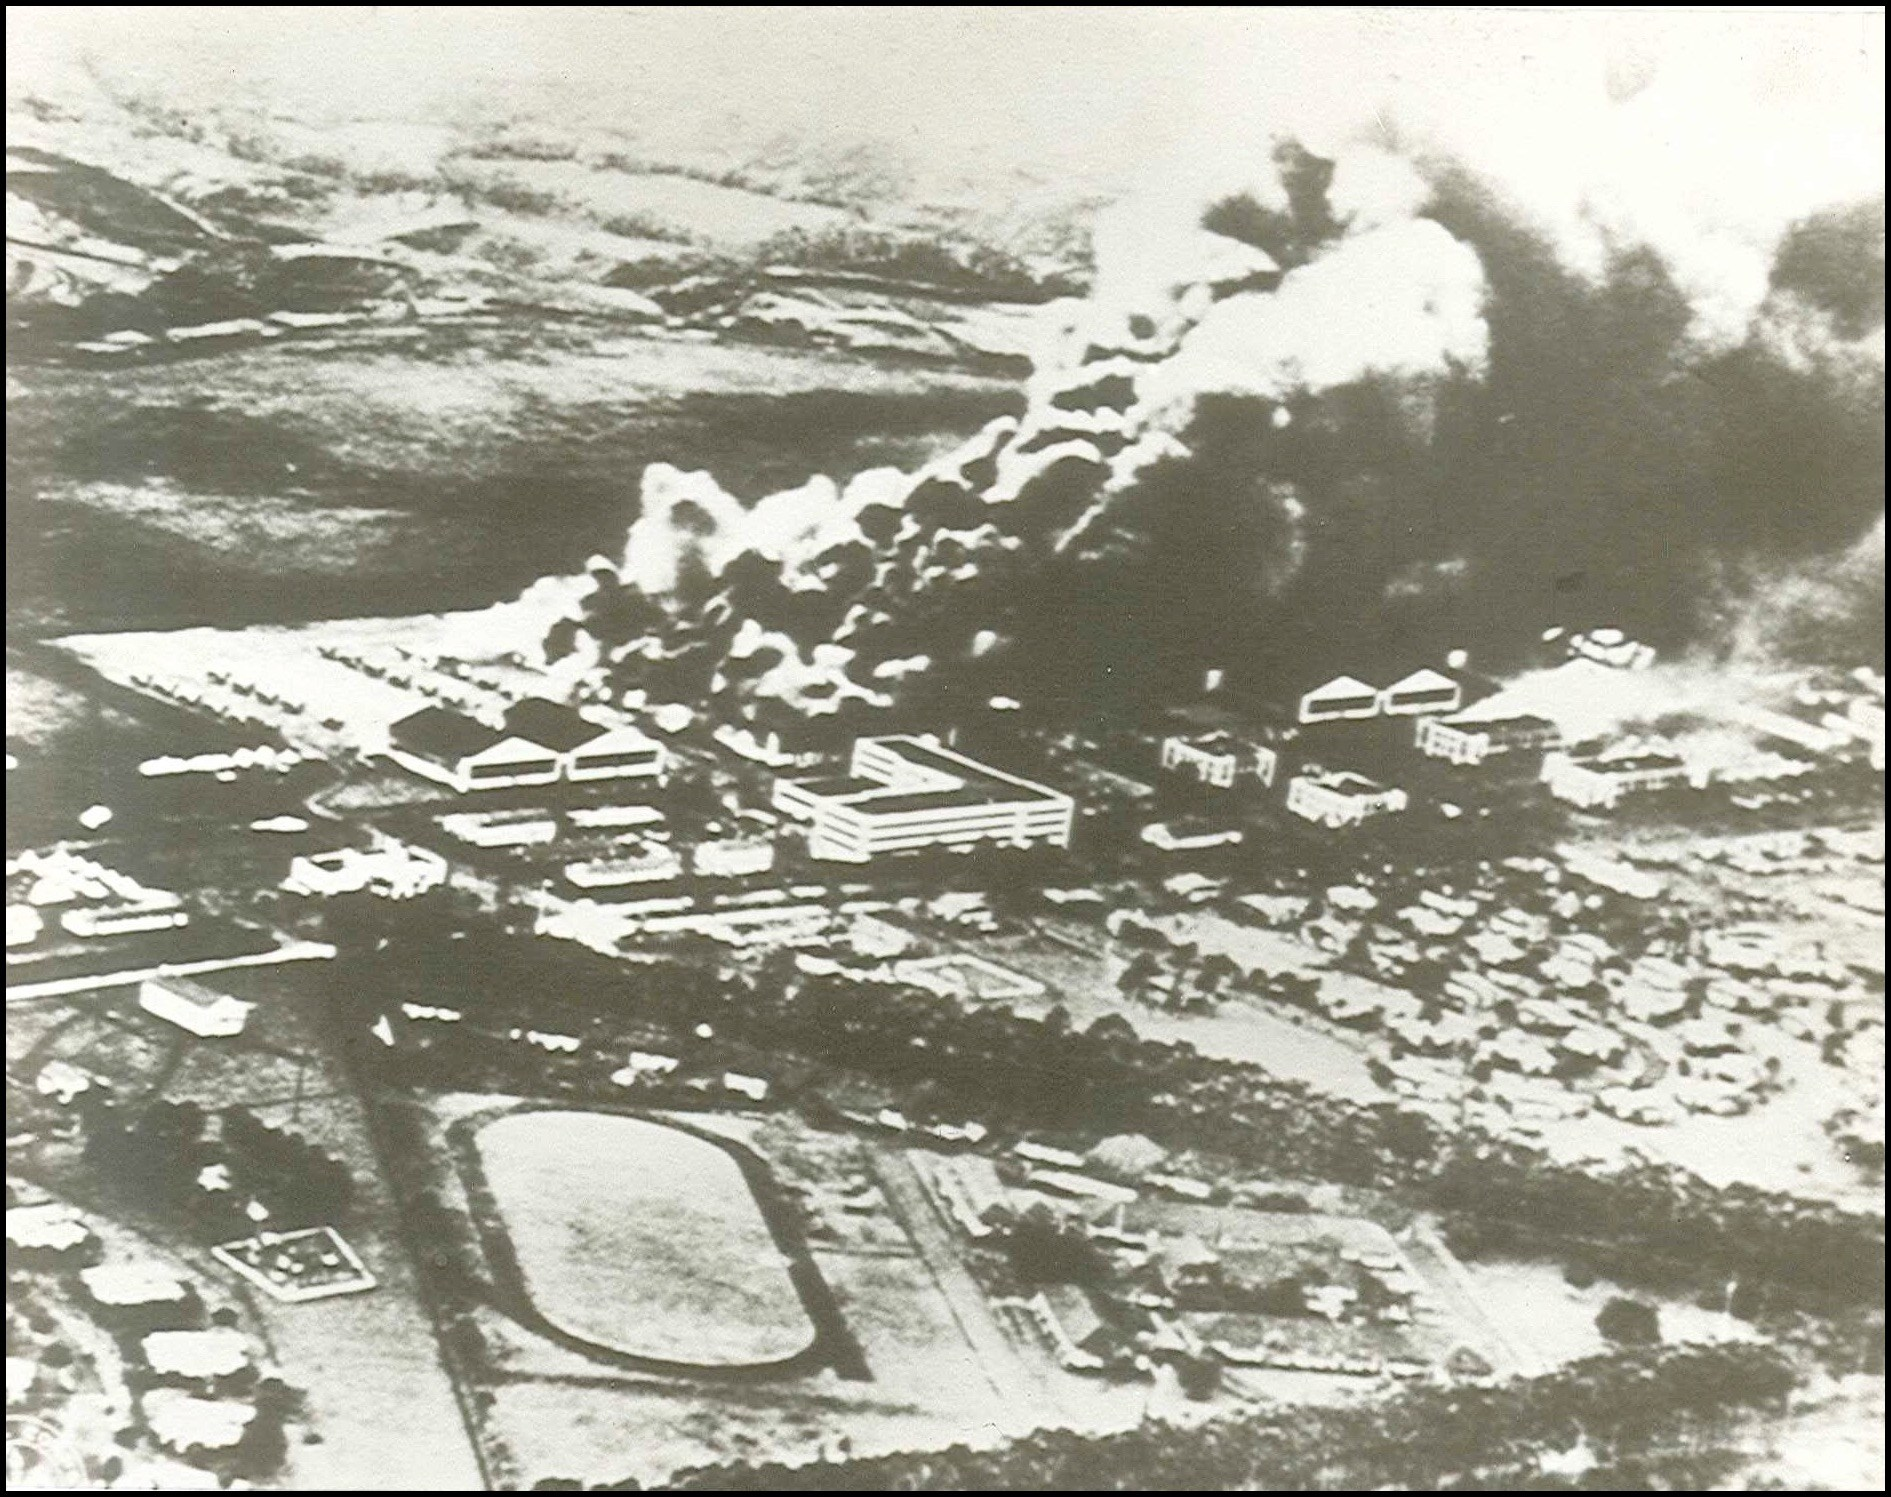 1941 Bombing, Wheeler Field